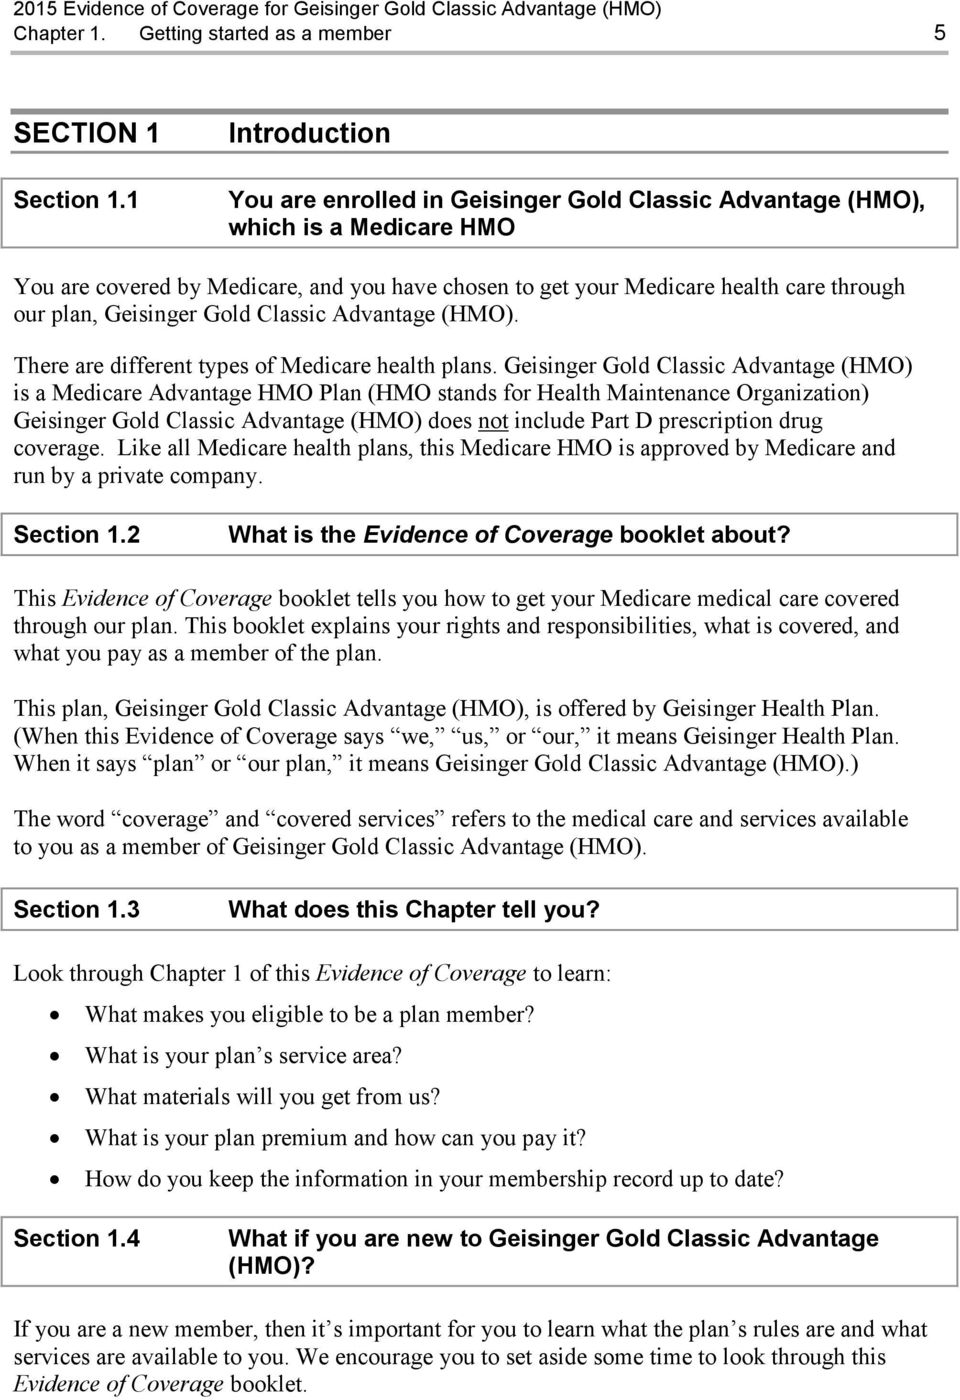 Geisinger Gold Classic Advantage (HMO). There are different types of Medicare health plans.